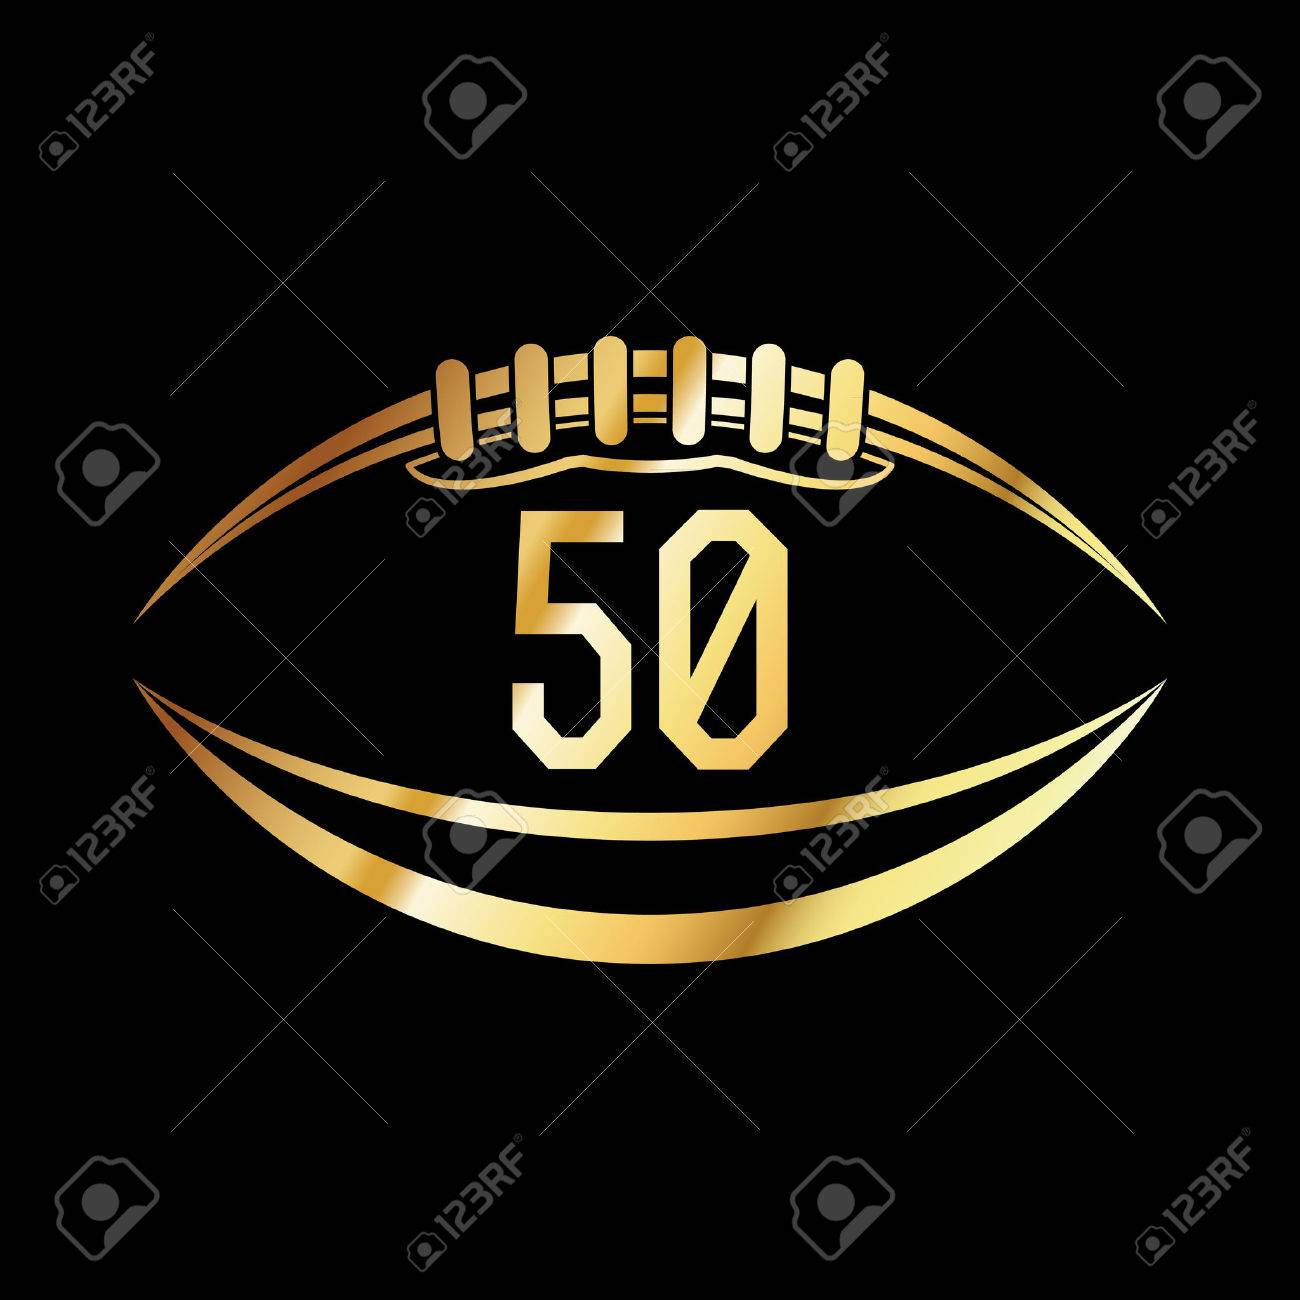 An american football emblem with the number 50. - 51394600